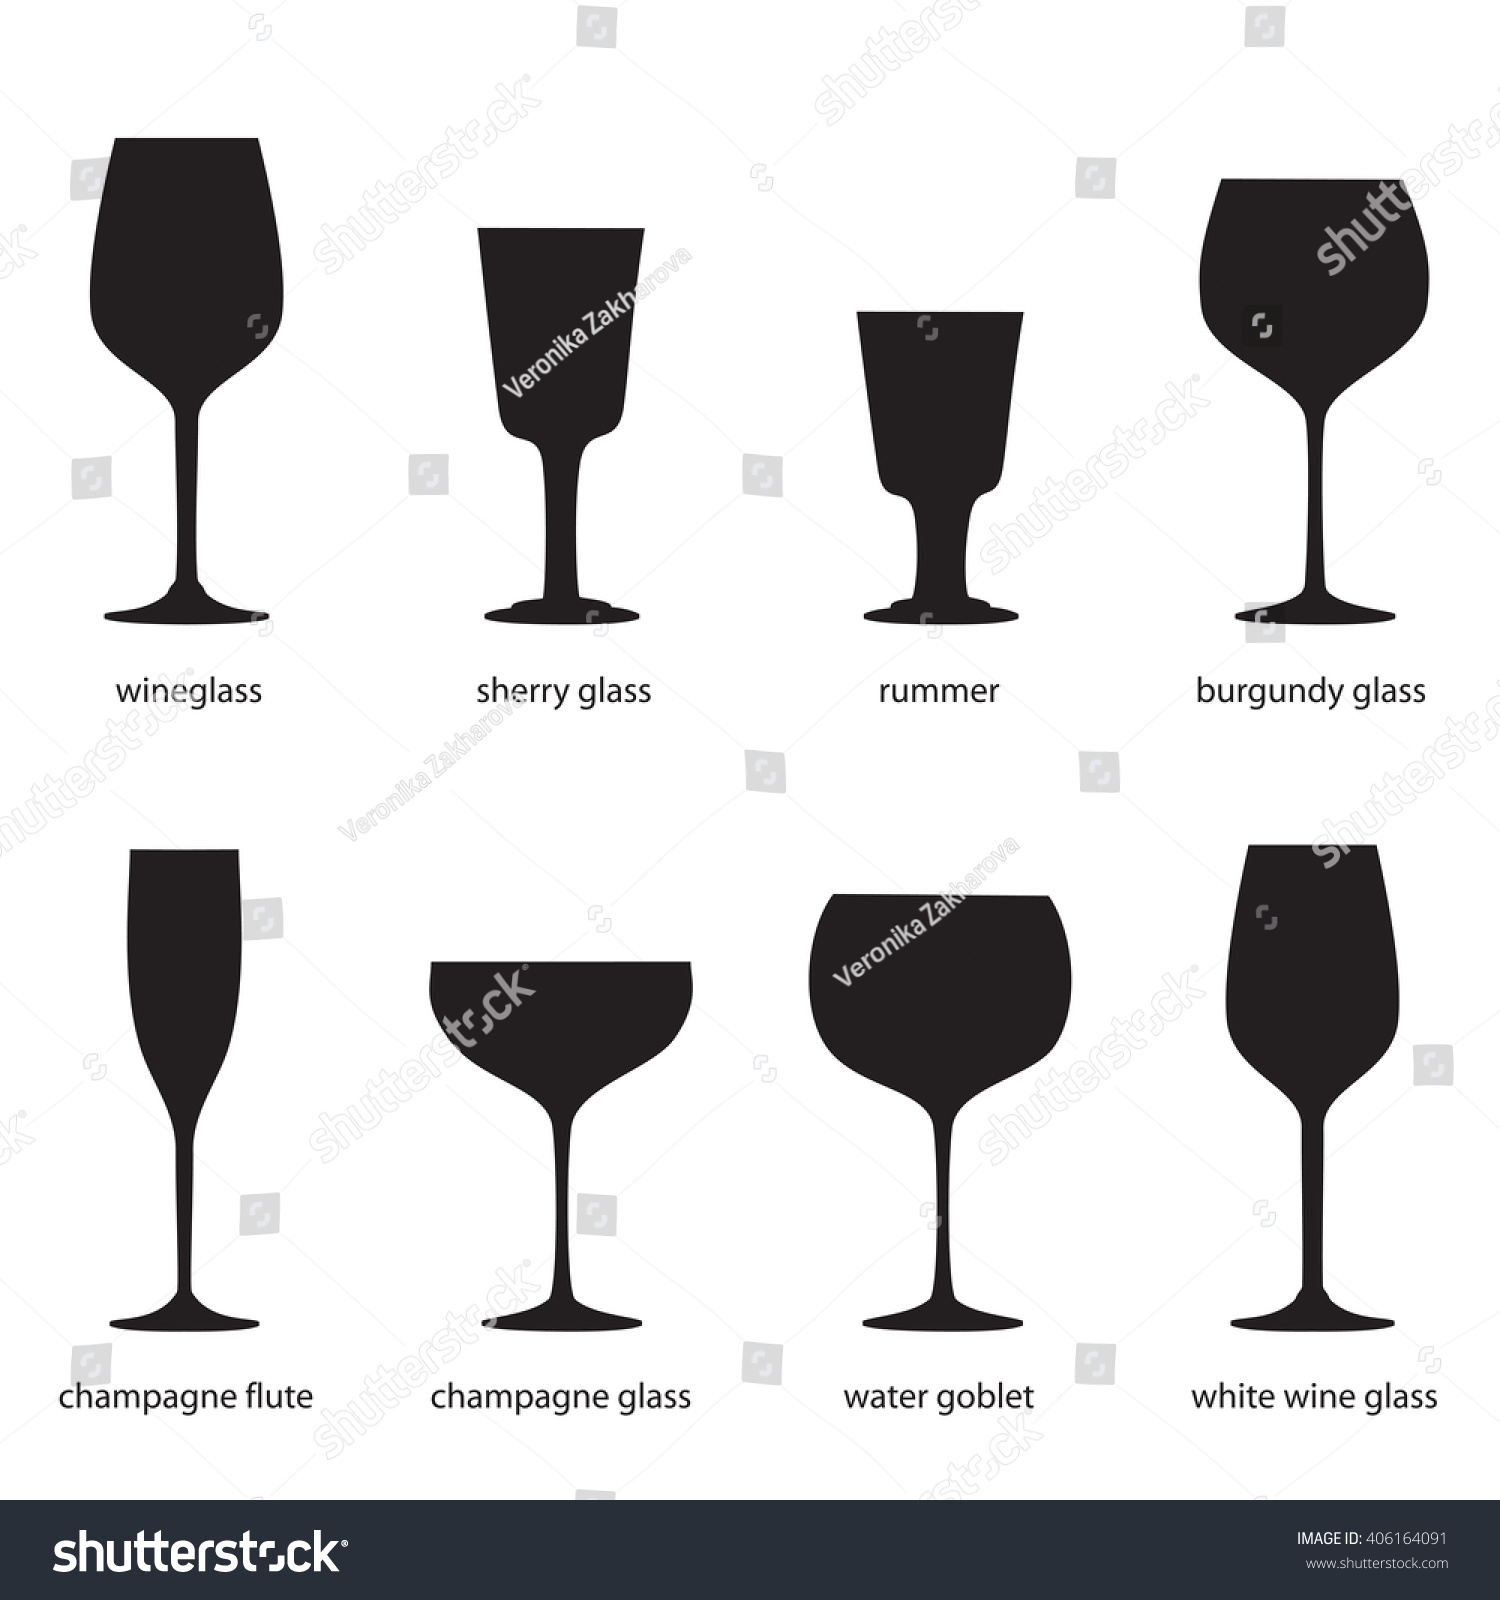 Difference Between Wine Glasses